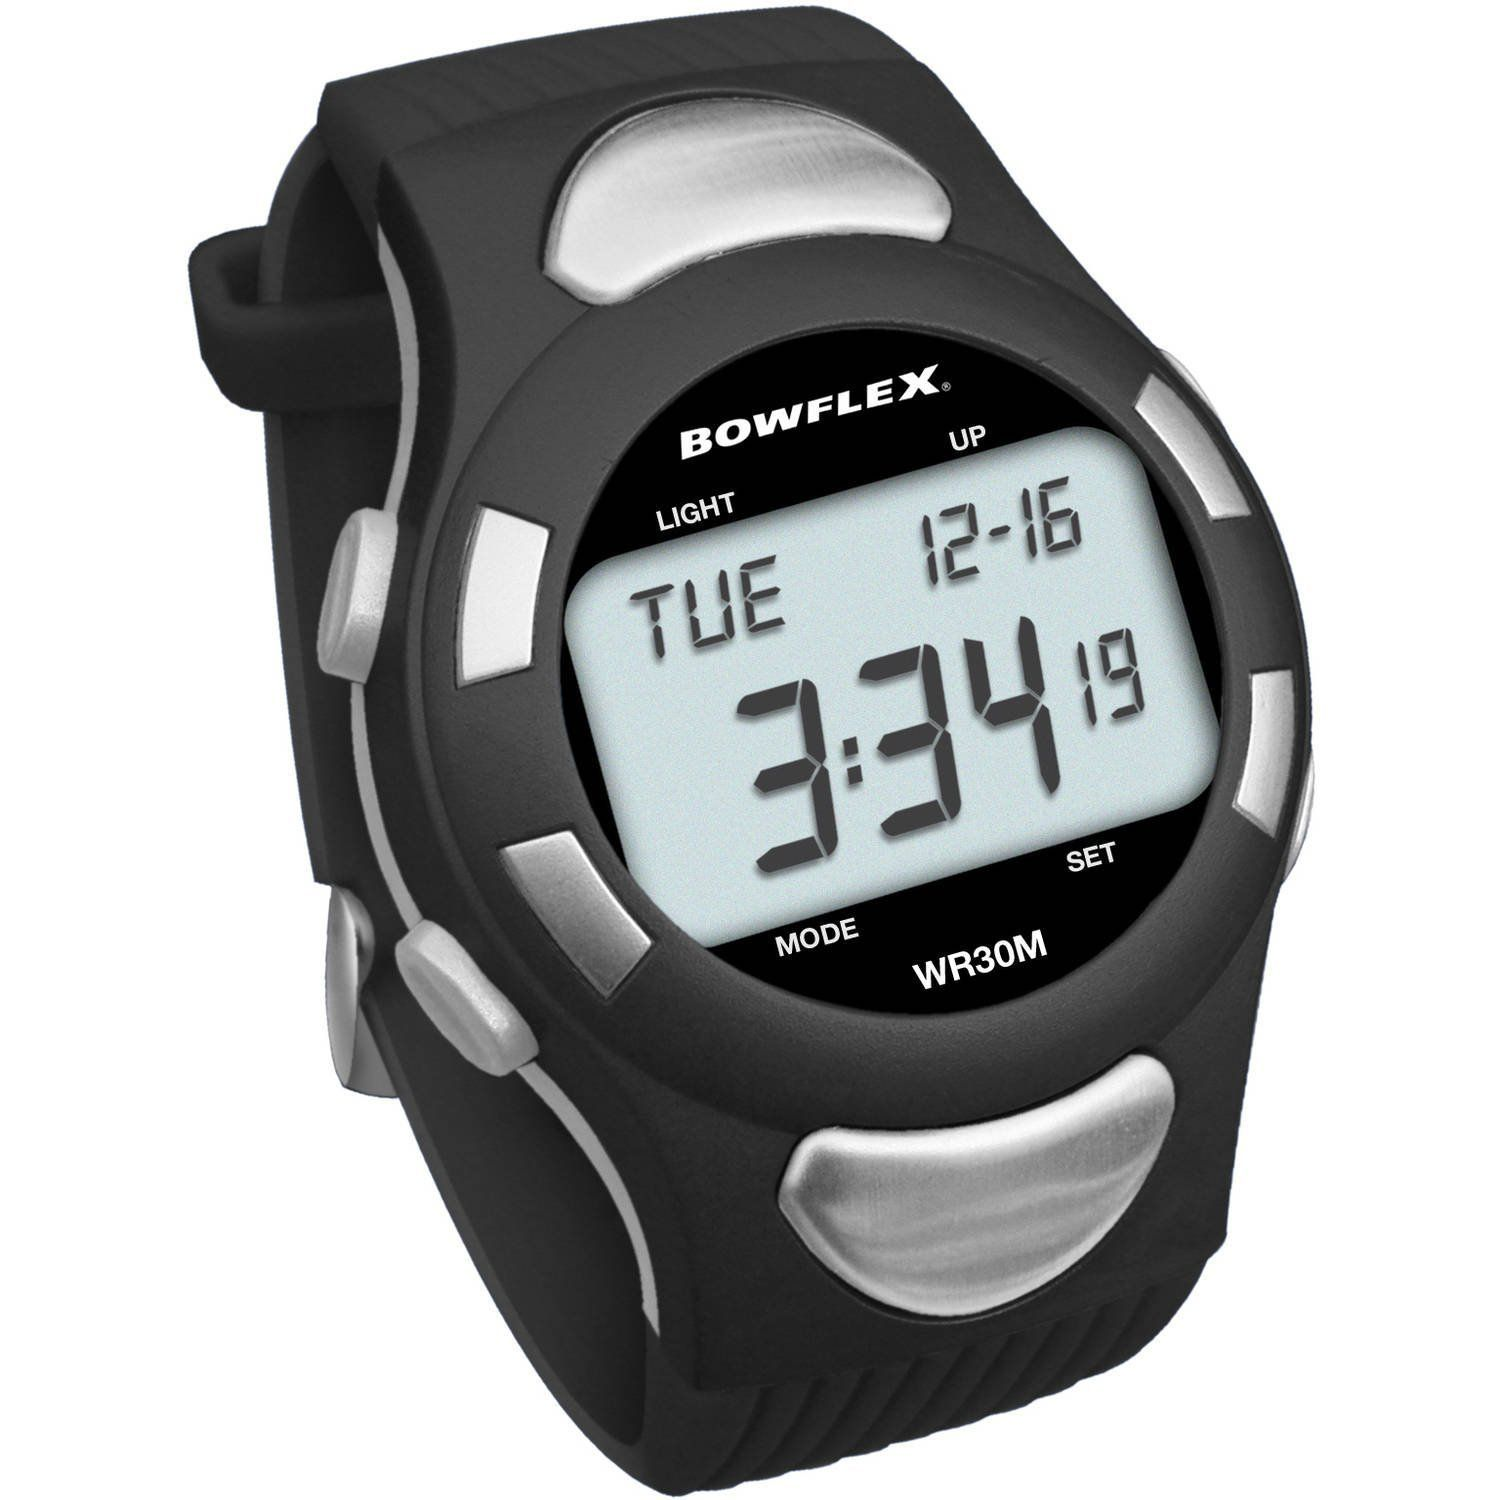 Best Watch Bowflex Strapless Water Resistant Ez Pro Heart Rate Monitor